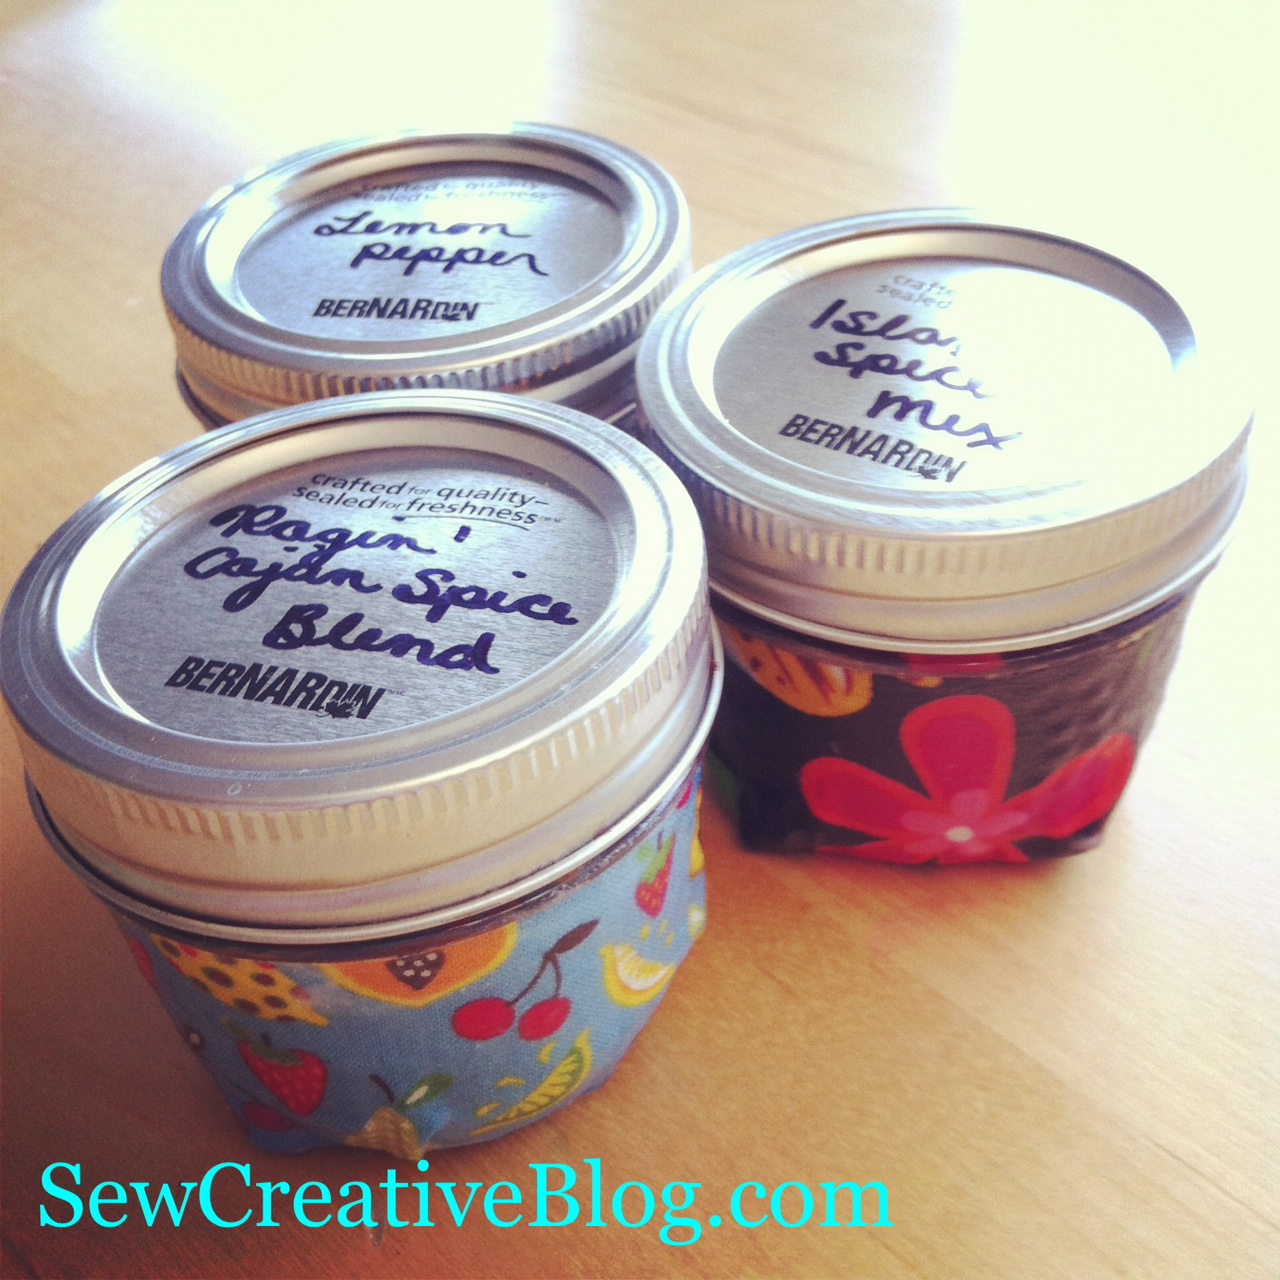 finished modge podge spice jars from SewCreativeBlog.com